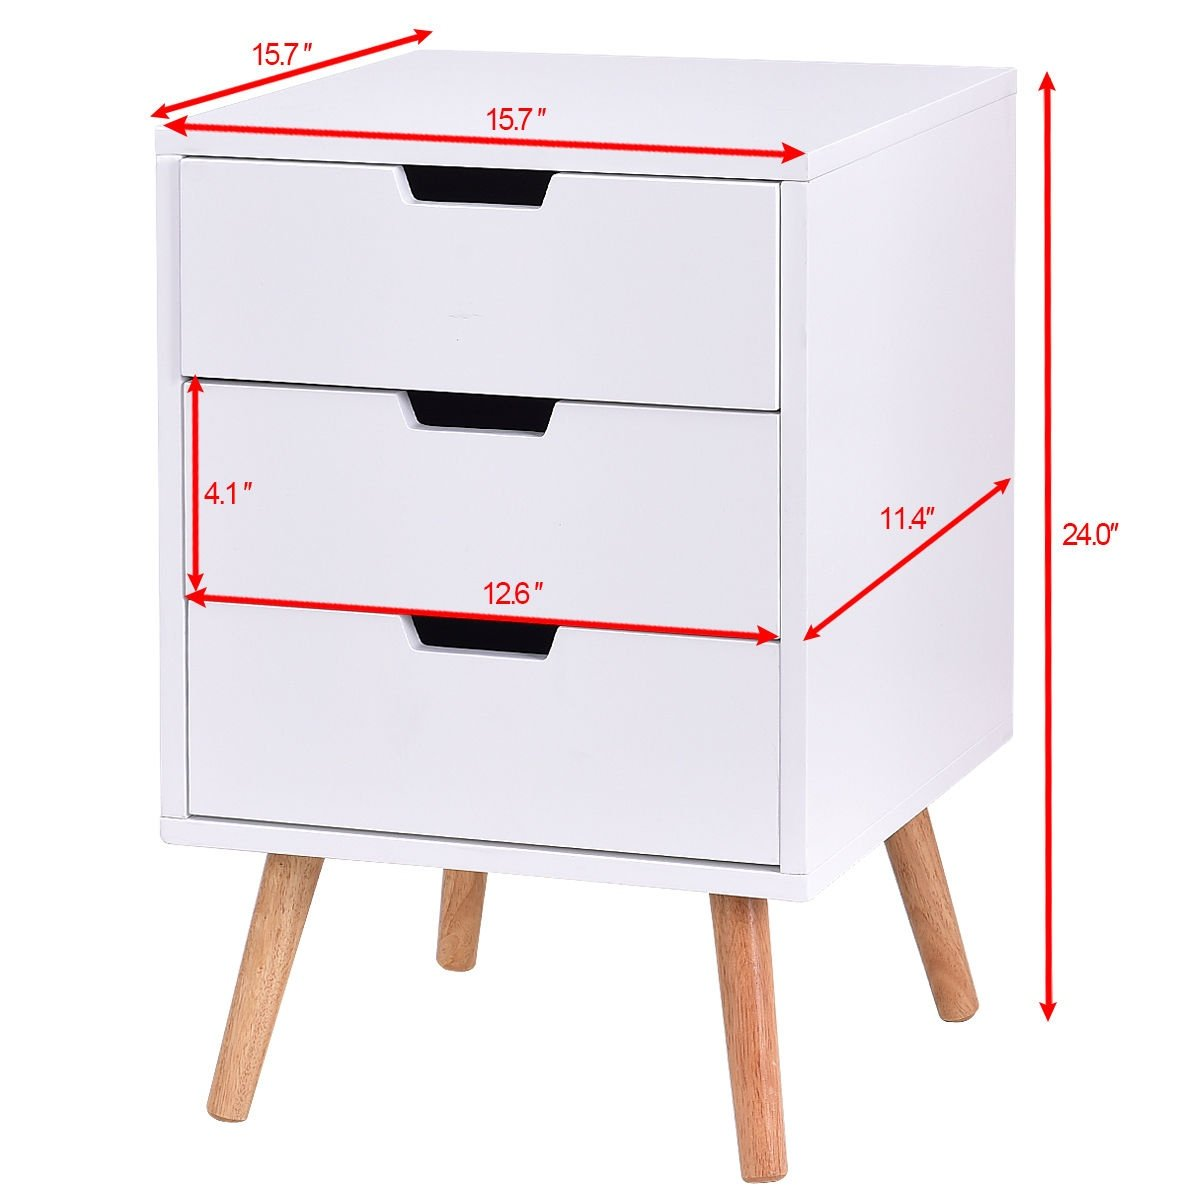 way white side end table nightstand drawers mid century accent wood furniture night console with shoe storage outdoor wicker patio round screw legs pottery barn dining set battery